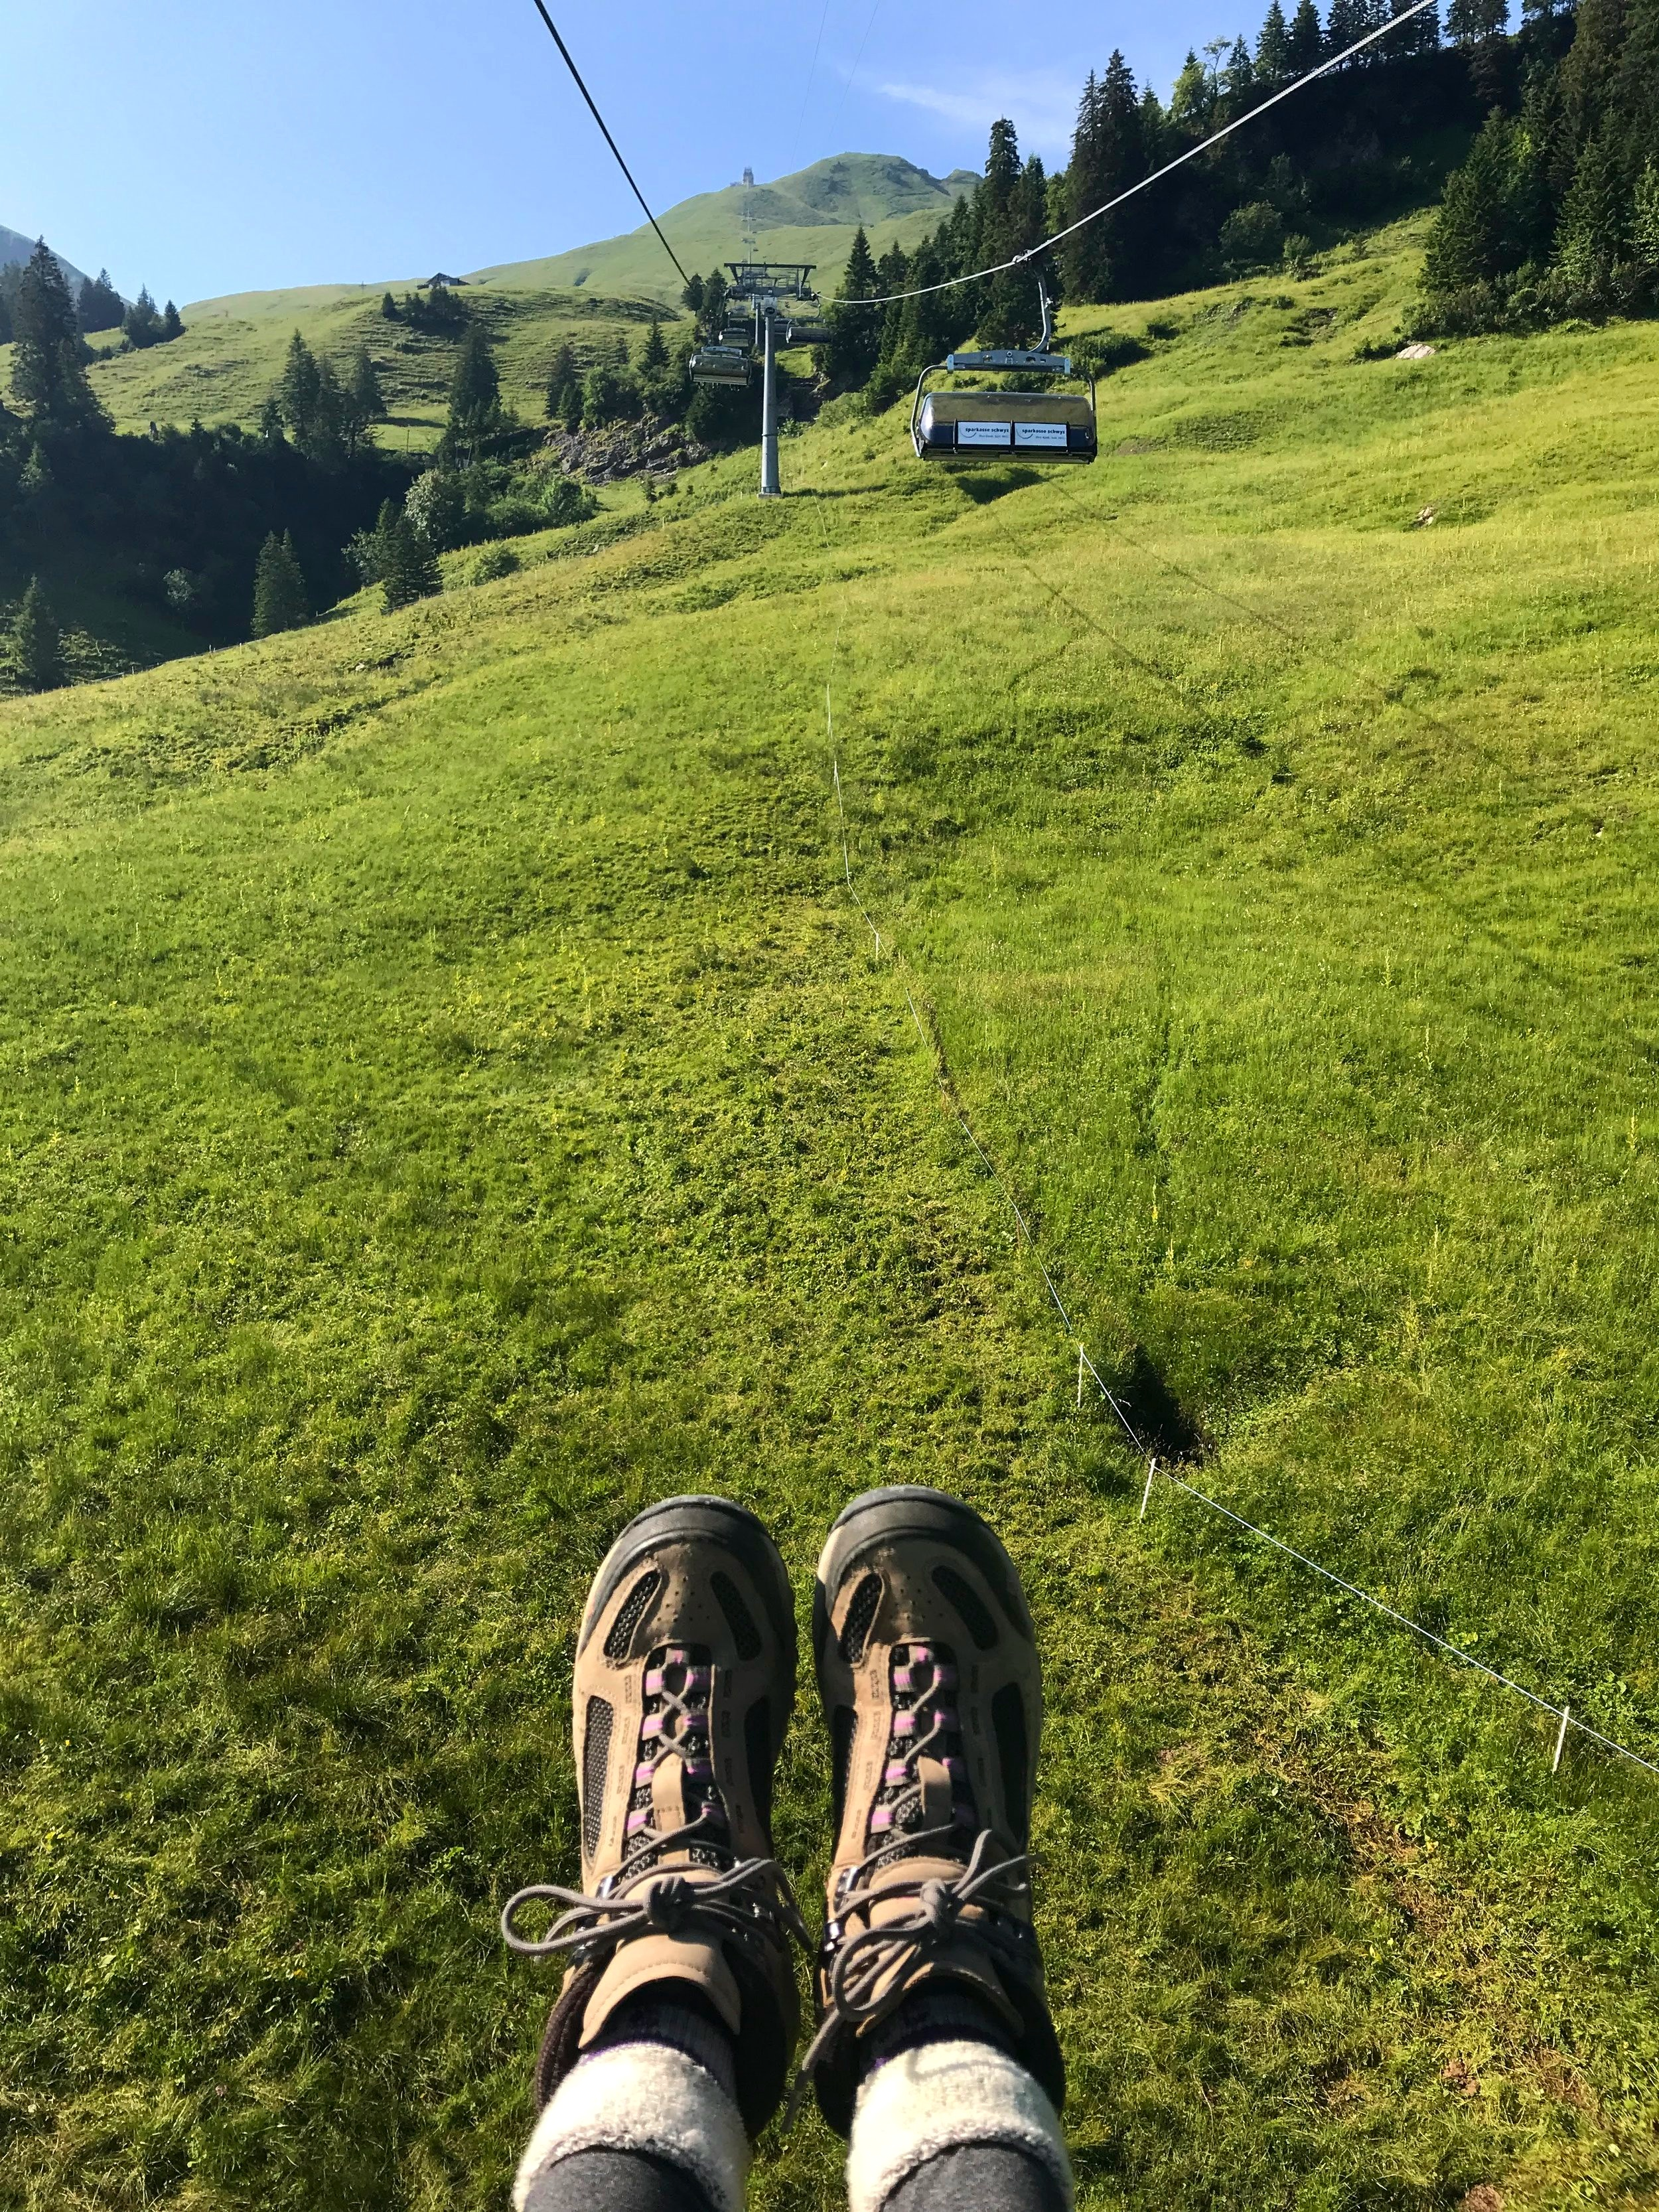 Riding a cable car to the start of the Pizol Five Lakes Hike